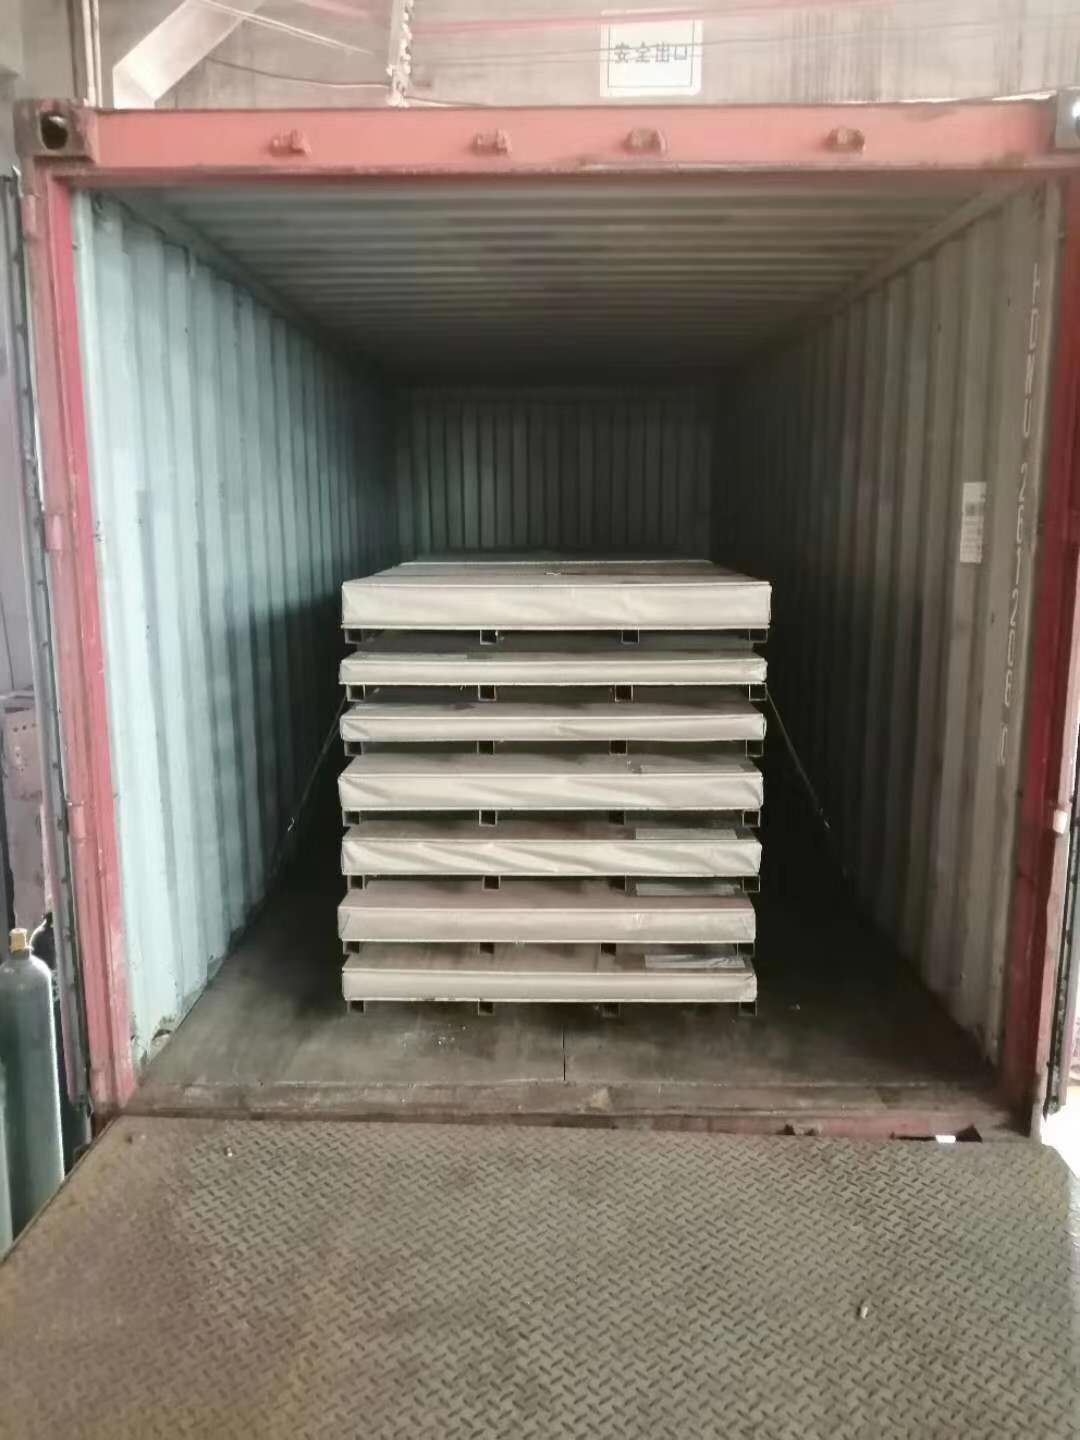 Export of colored stainless steel sheets into containers